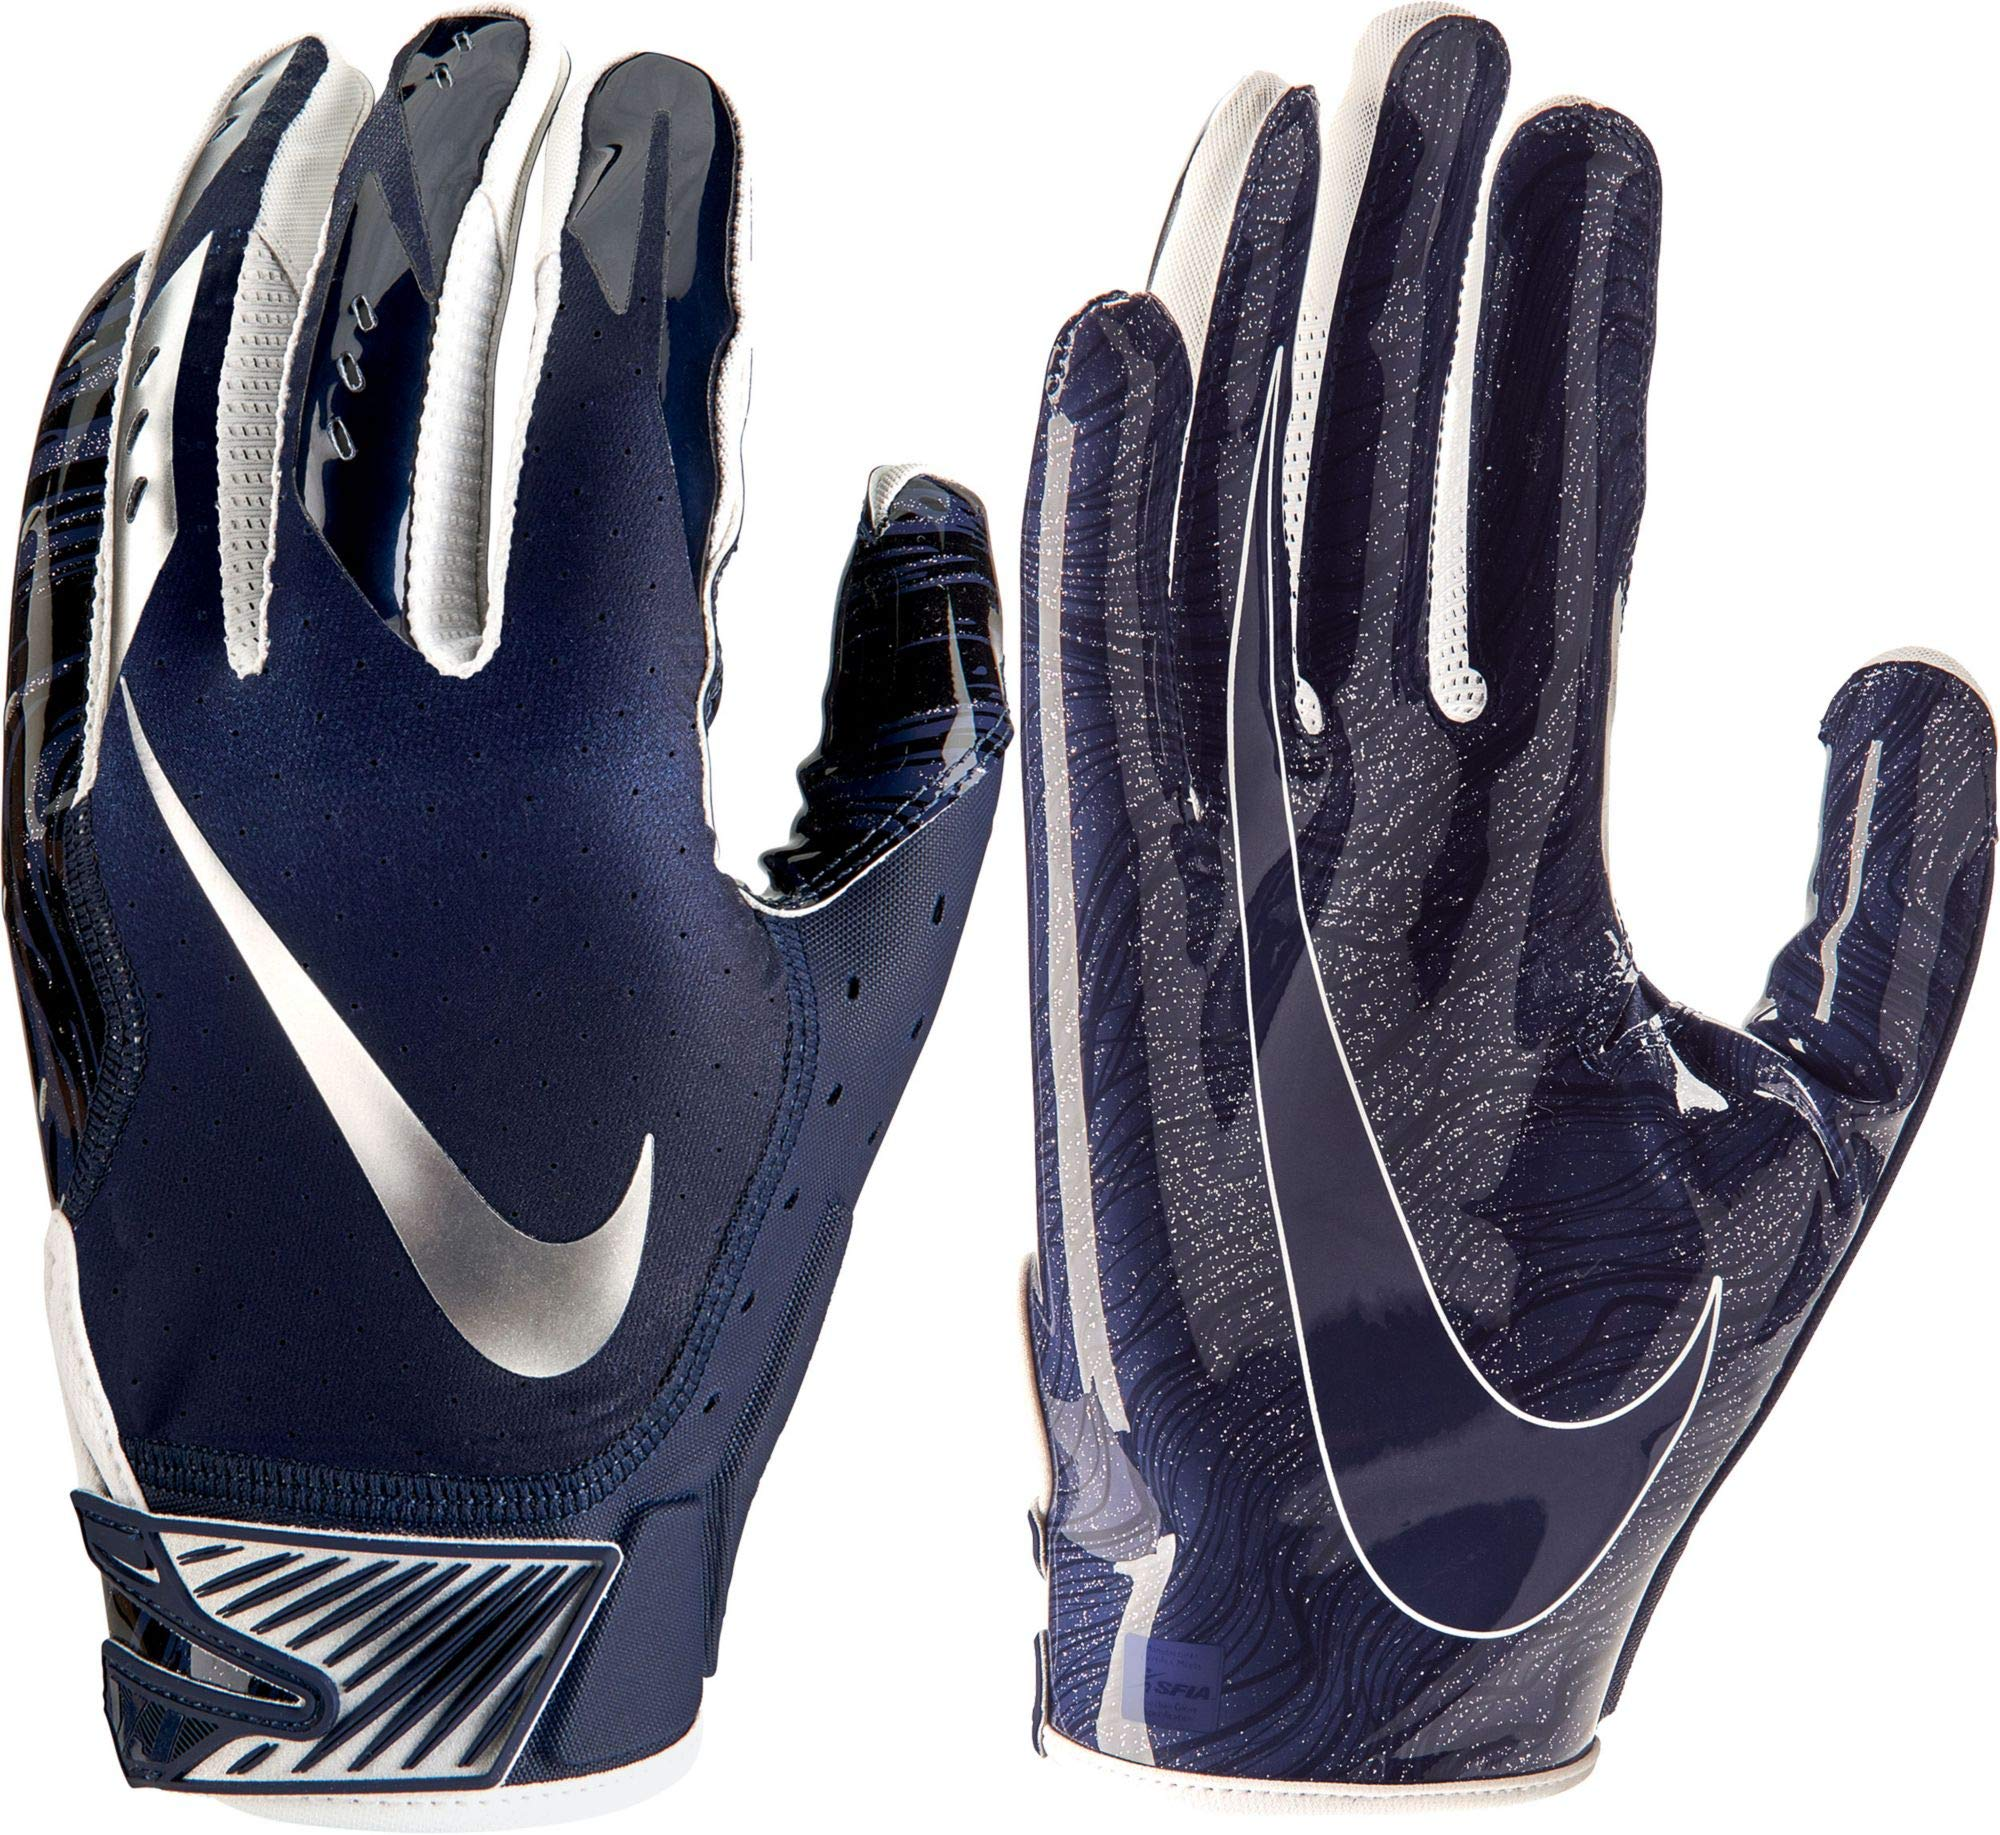 NIKE Mens Vapor Jet 5.0 Football Gloves Game College Navy/Chrome (College Navy/Chrome, Small)